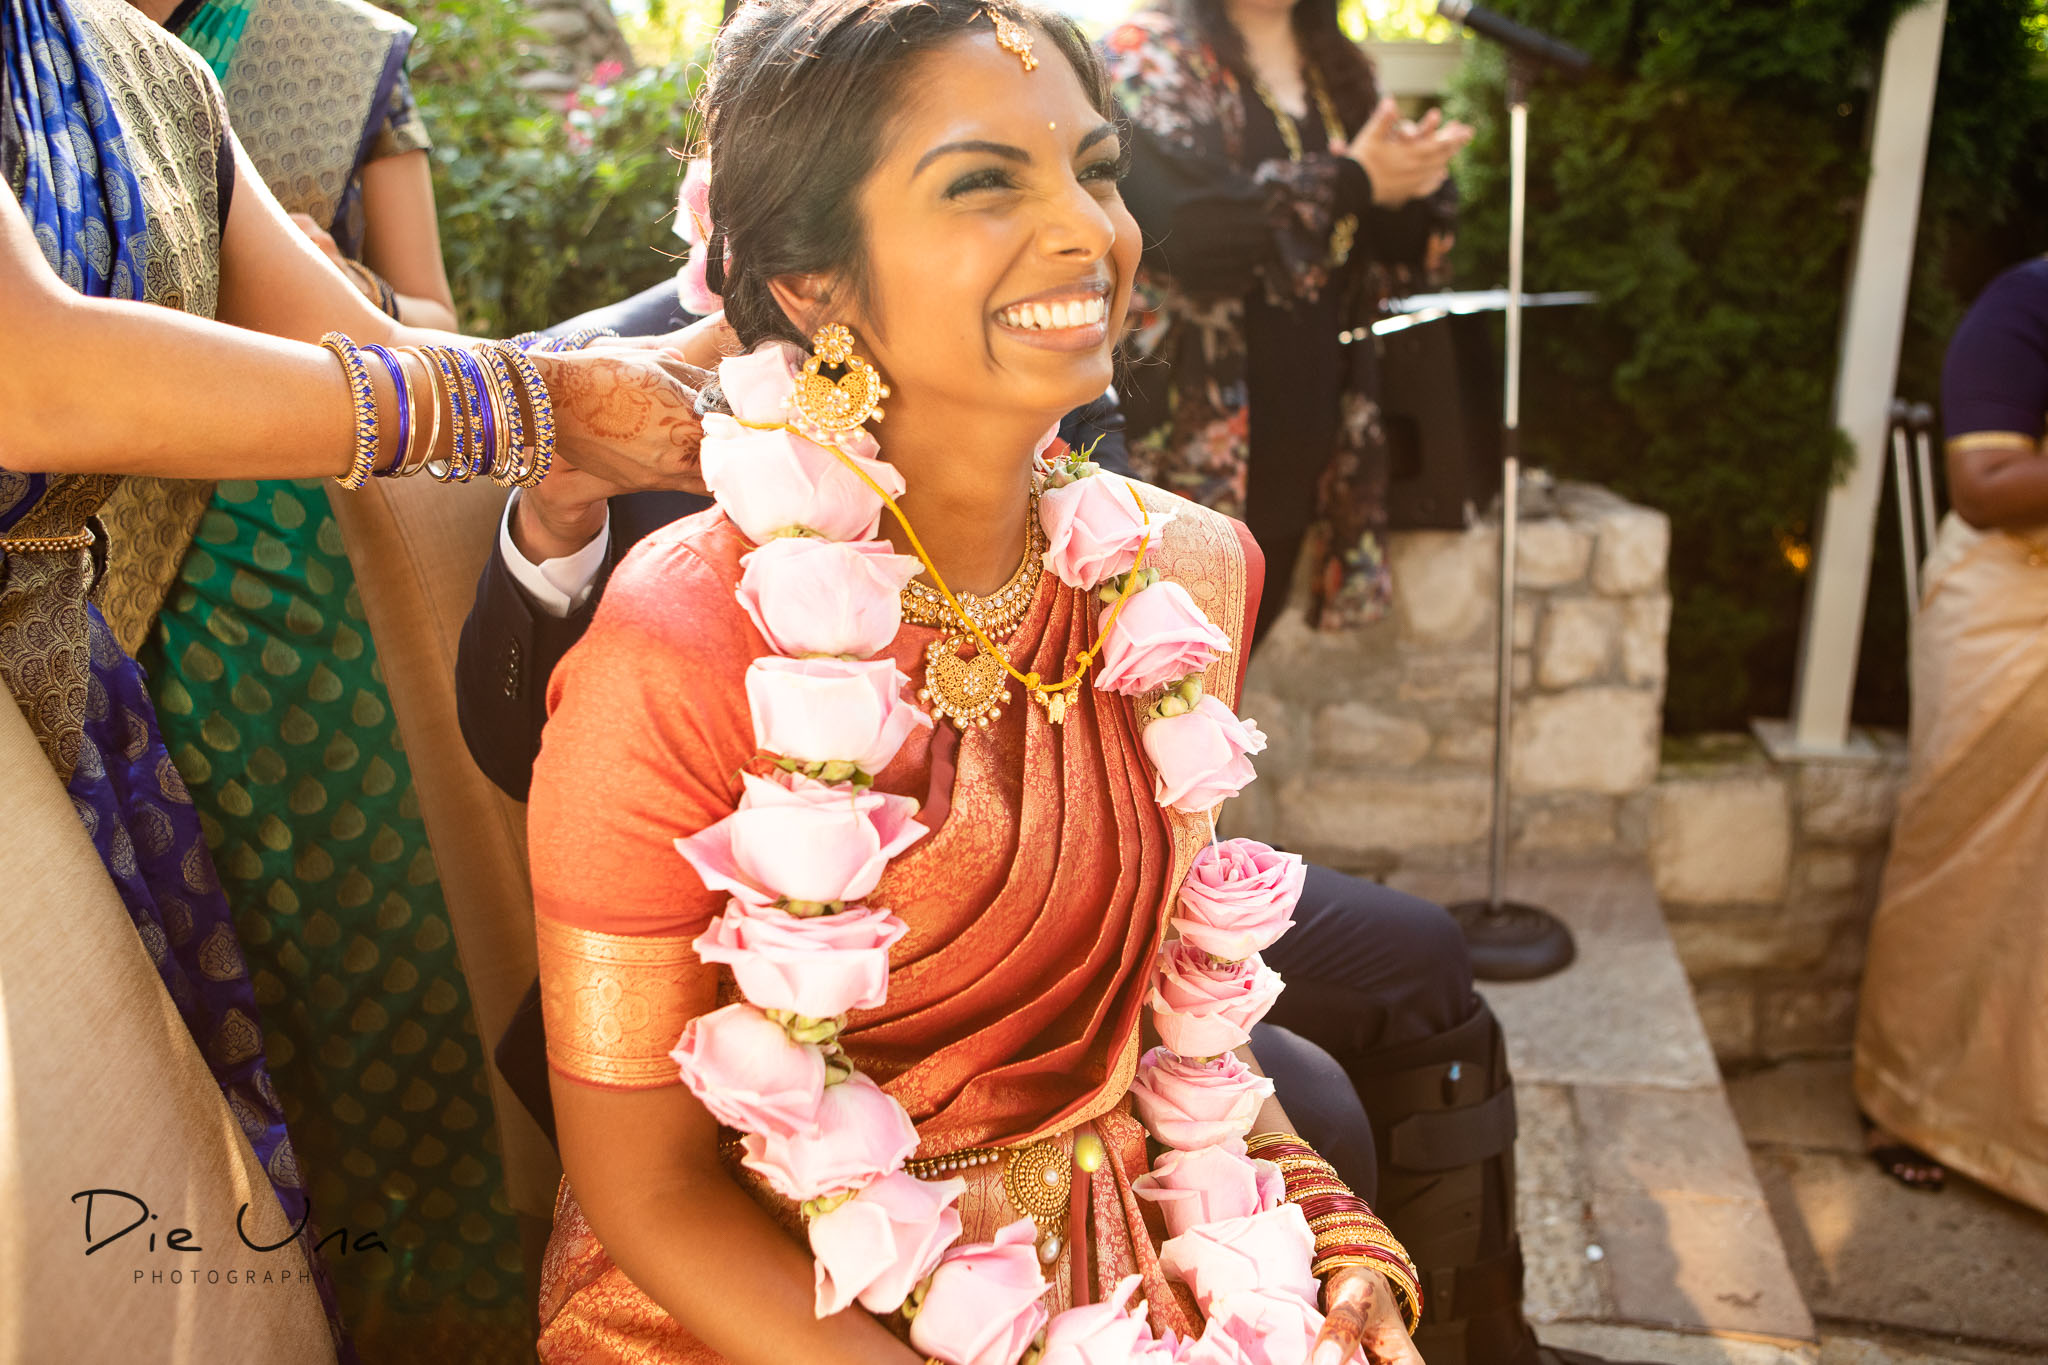 happy bride during the tying of the thaali during Sri Lankan wedding ceremony.jpg